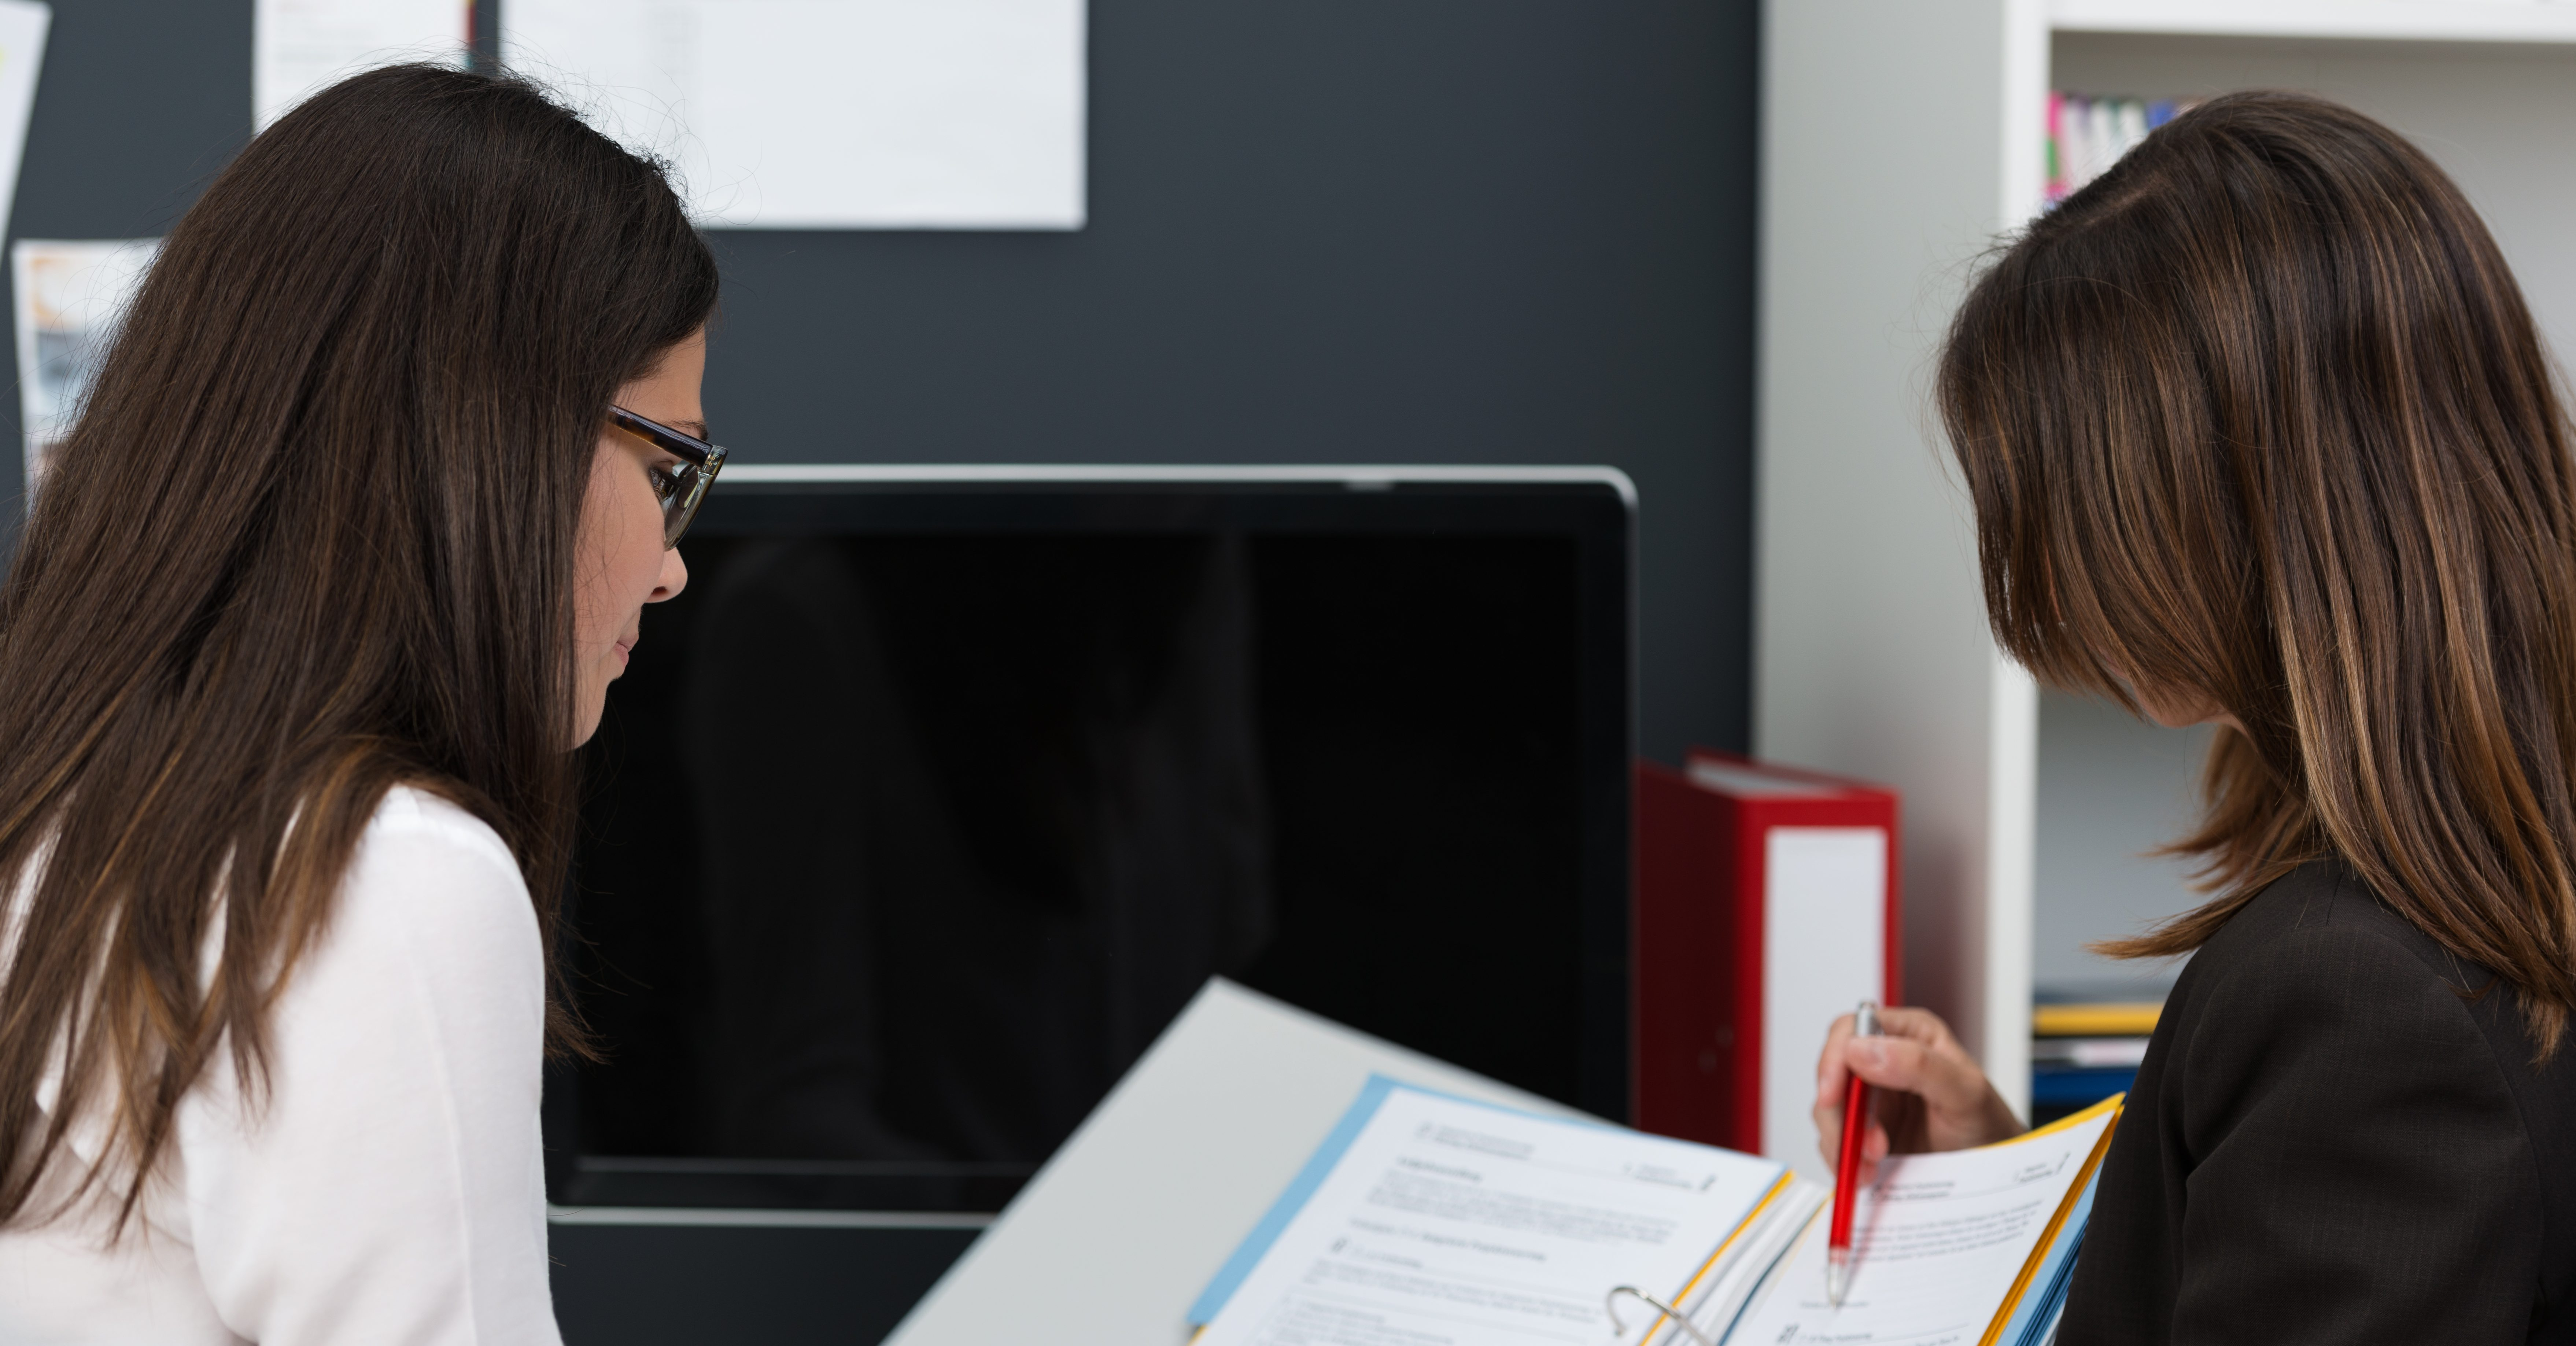 Two young women in the office working on paperwork as they sit together at a desk, over the shoulder view of the file they are working on